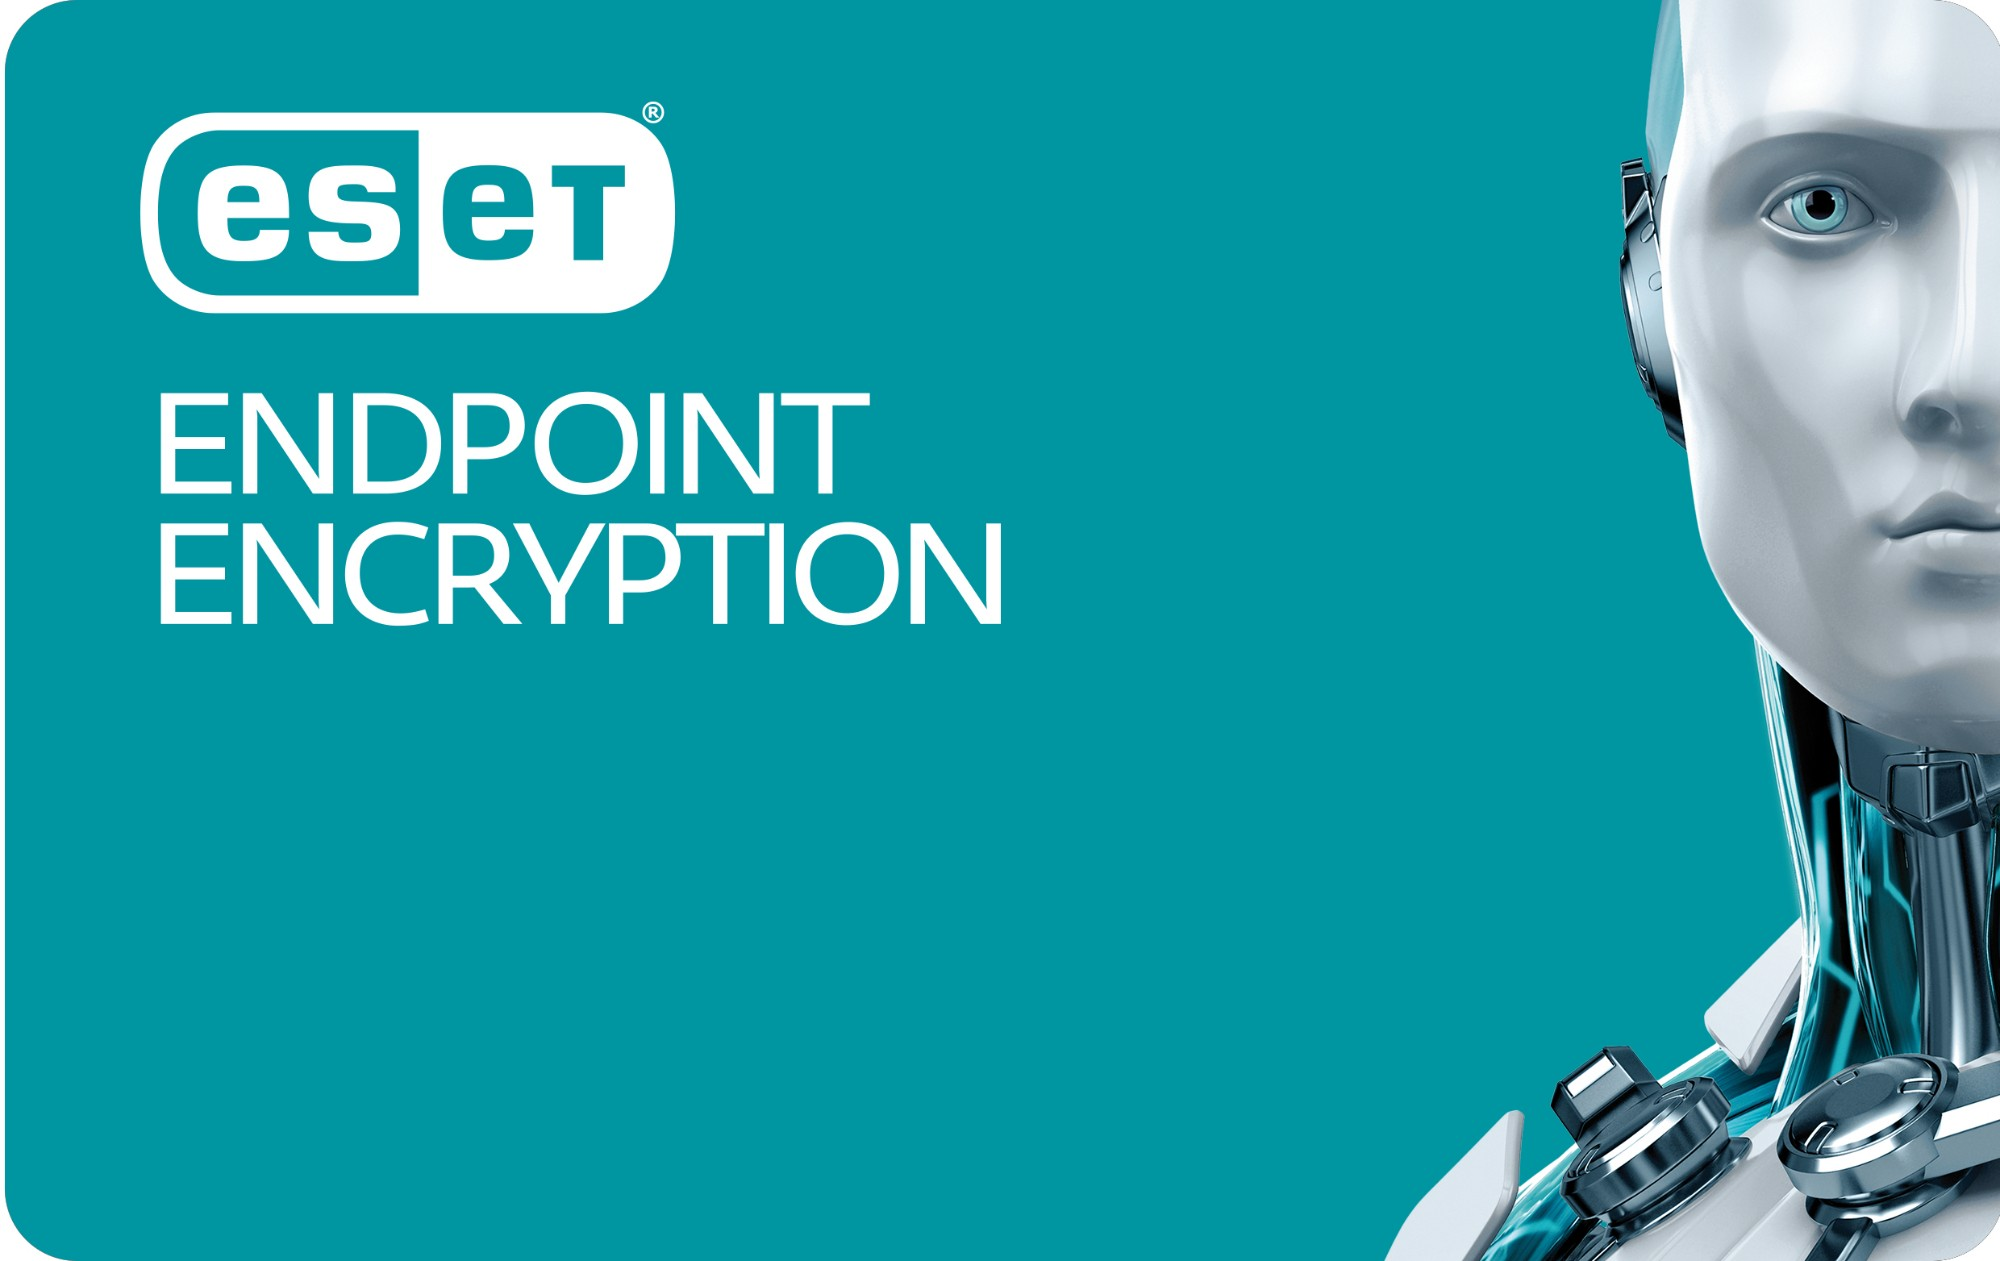 ESET Endpoint Encryption Pro 100 - 299 User Government (GOV) license 100 - 299 license(s) 3 year(s)